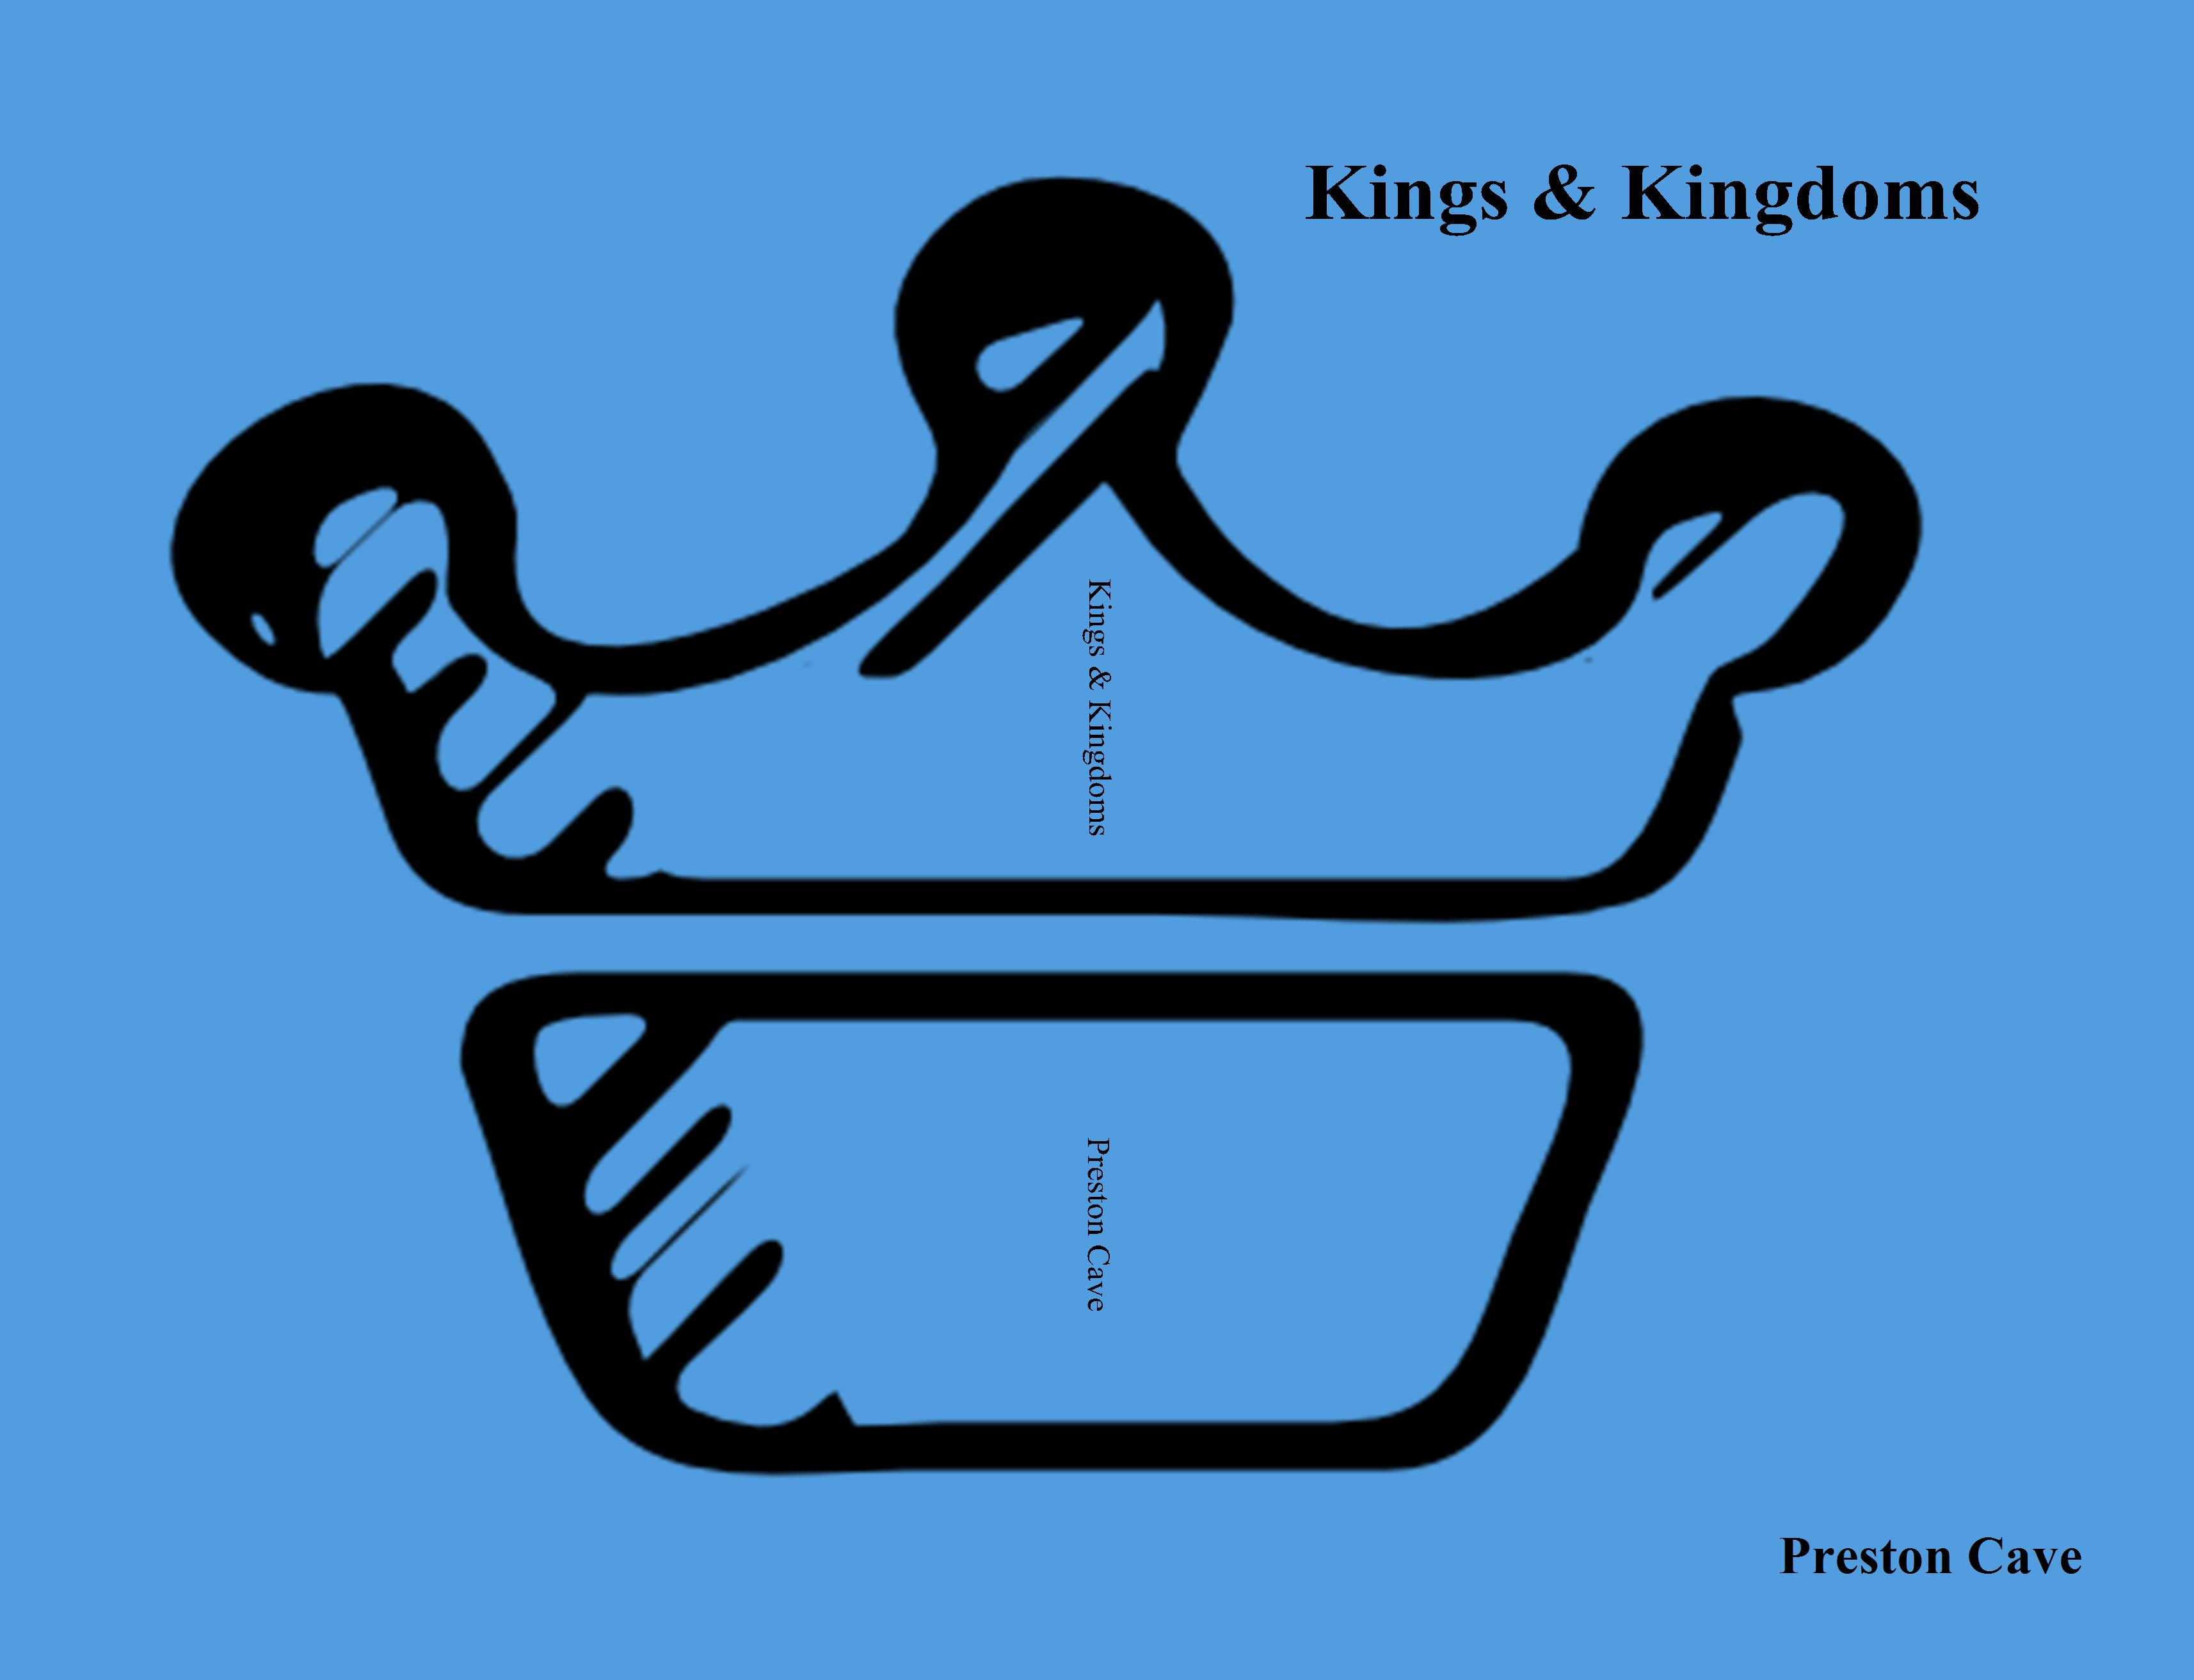 Kings & Kingdoms cover image